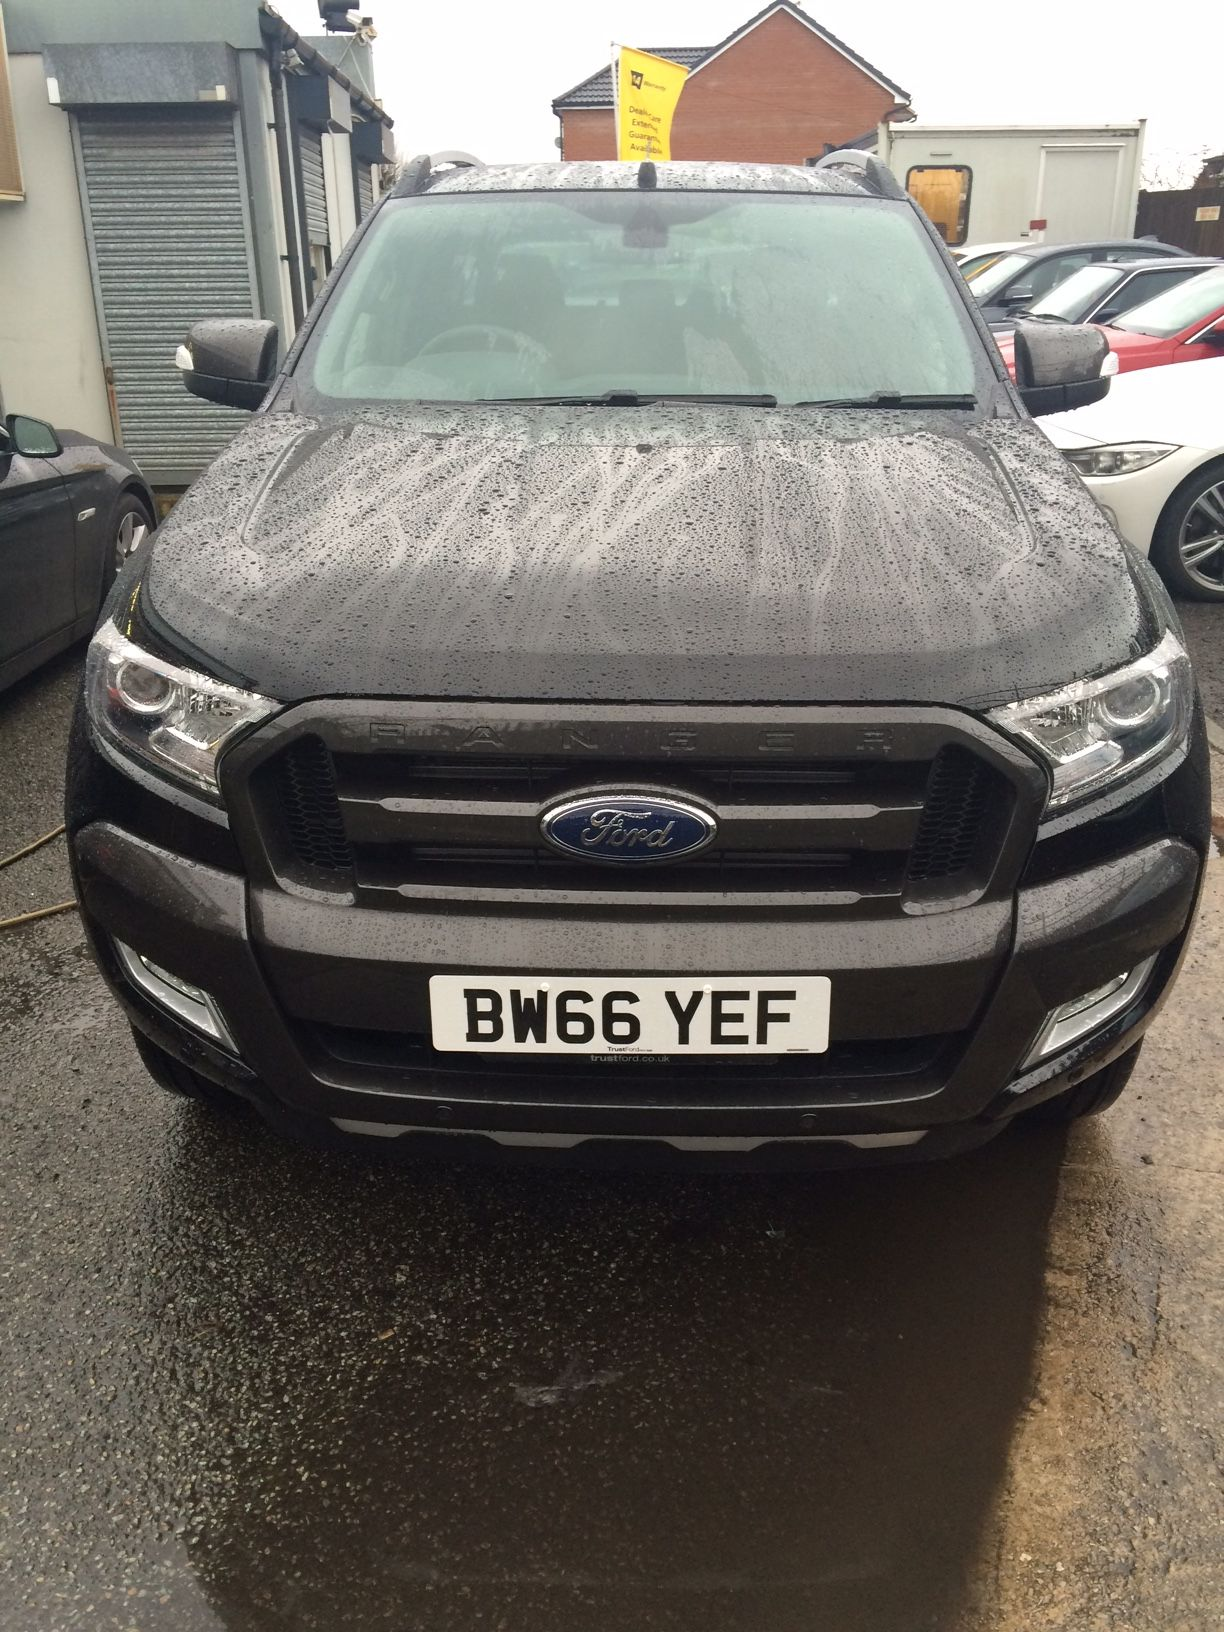 The Ford Ranger Wildtrak Leasing Deal One Of The Many Cars And